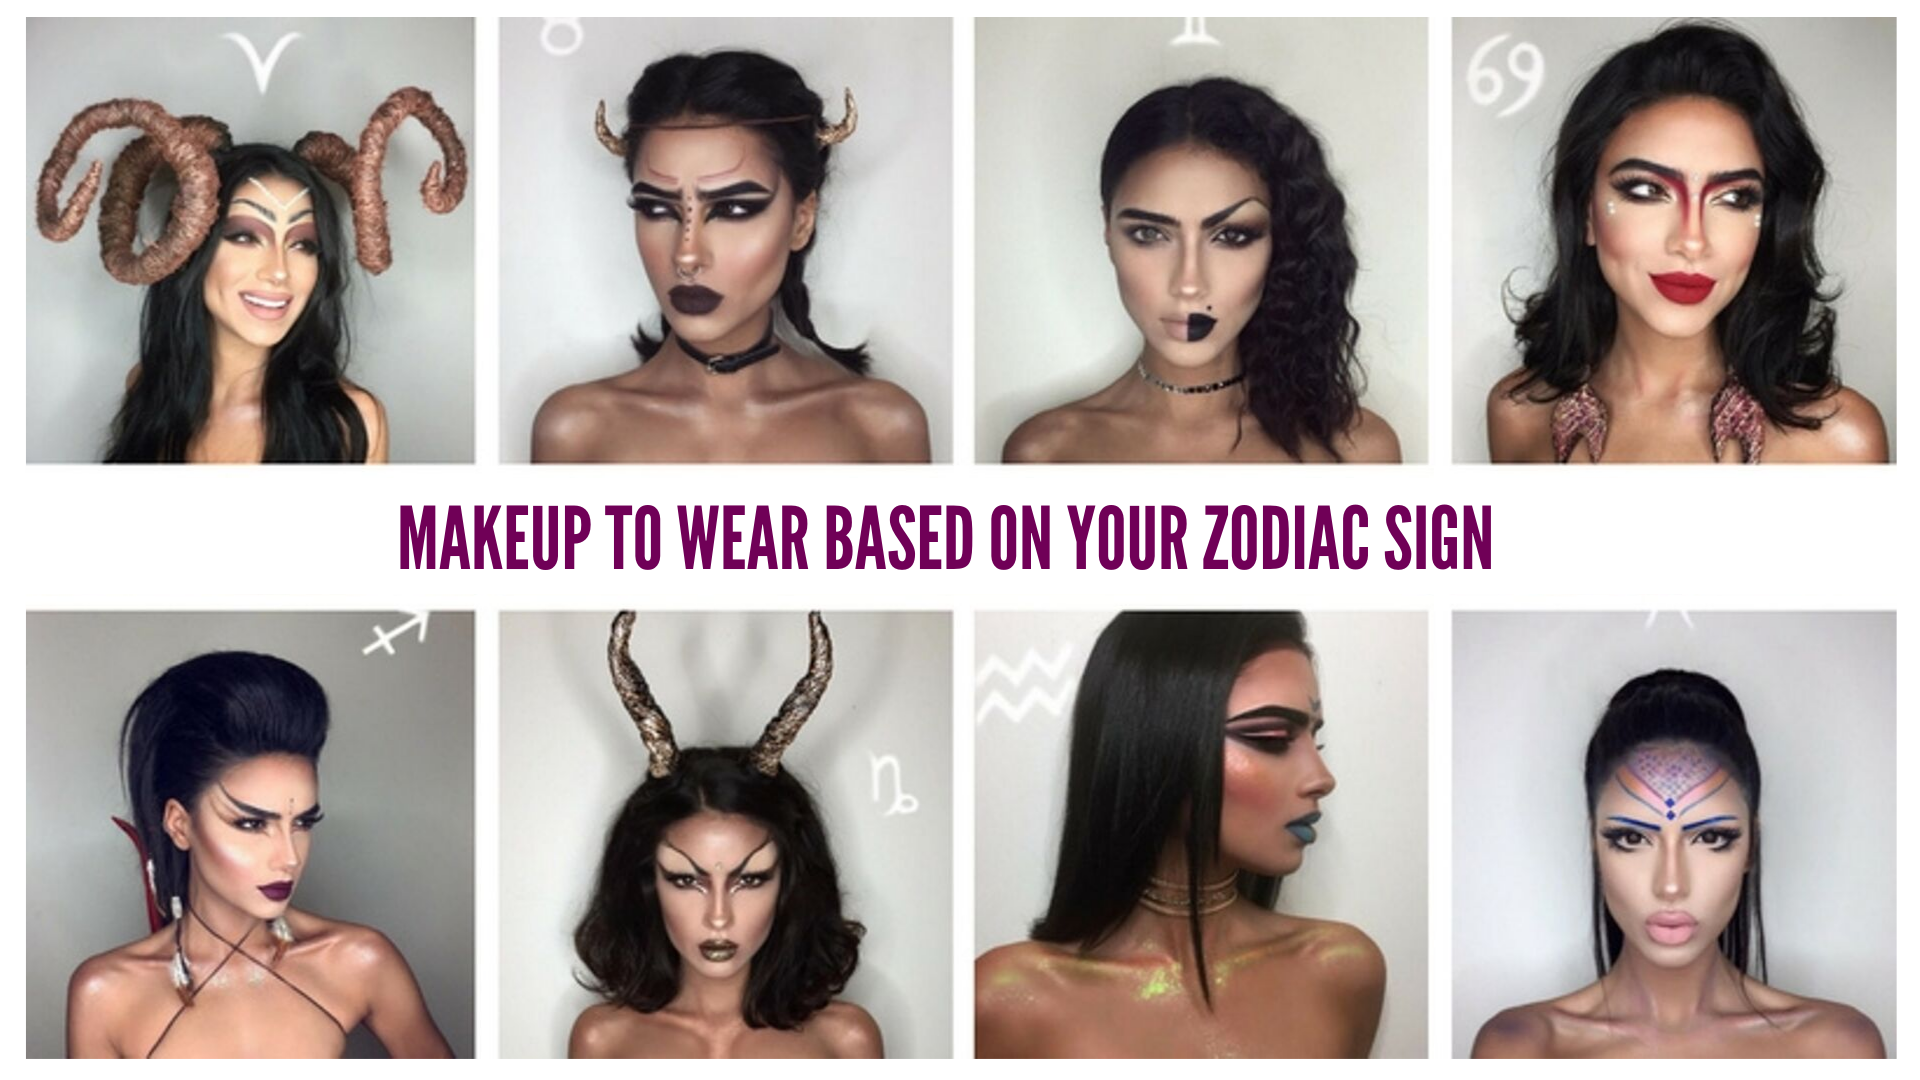 Makeup to Wear Based On Your Zodiac Sign